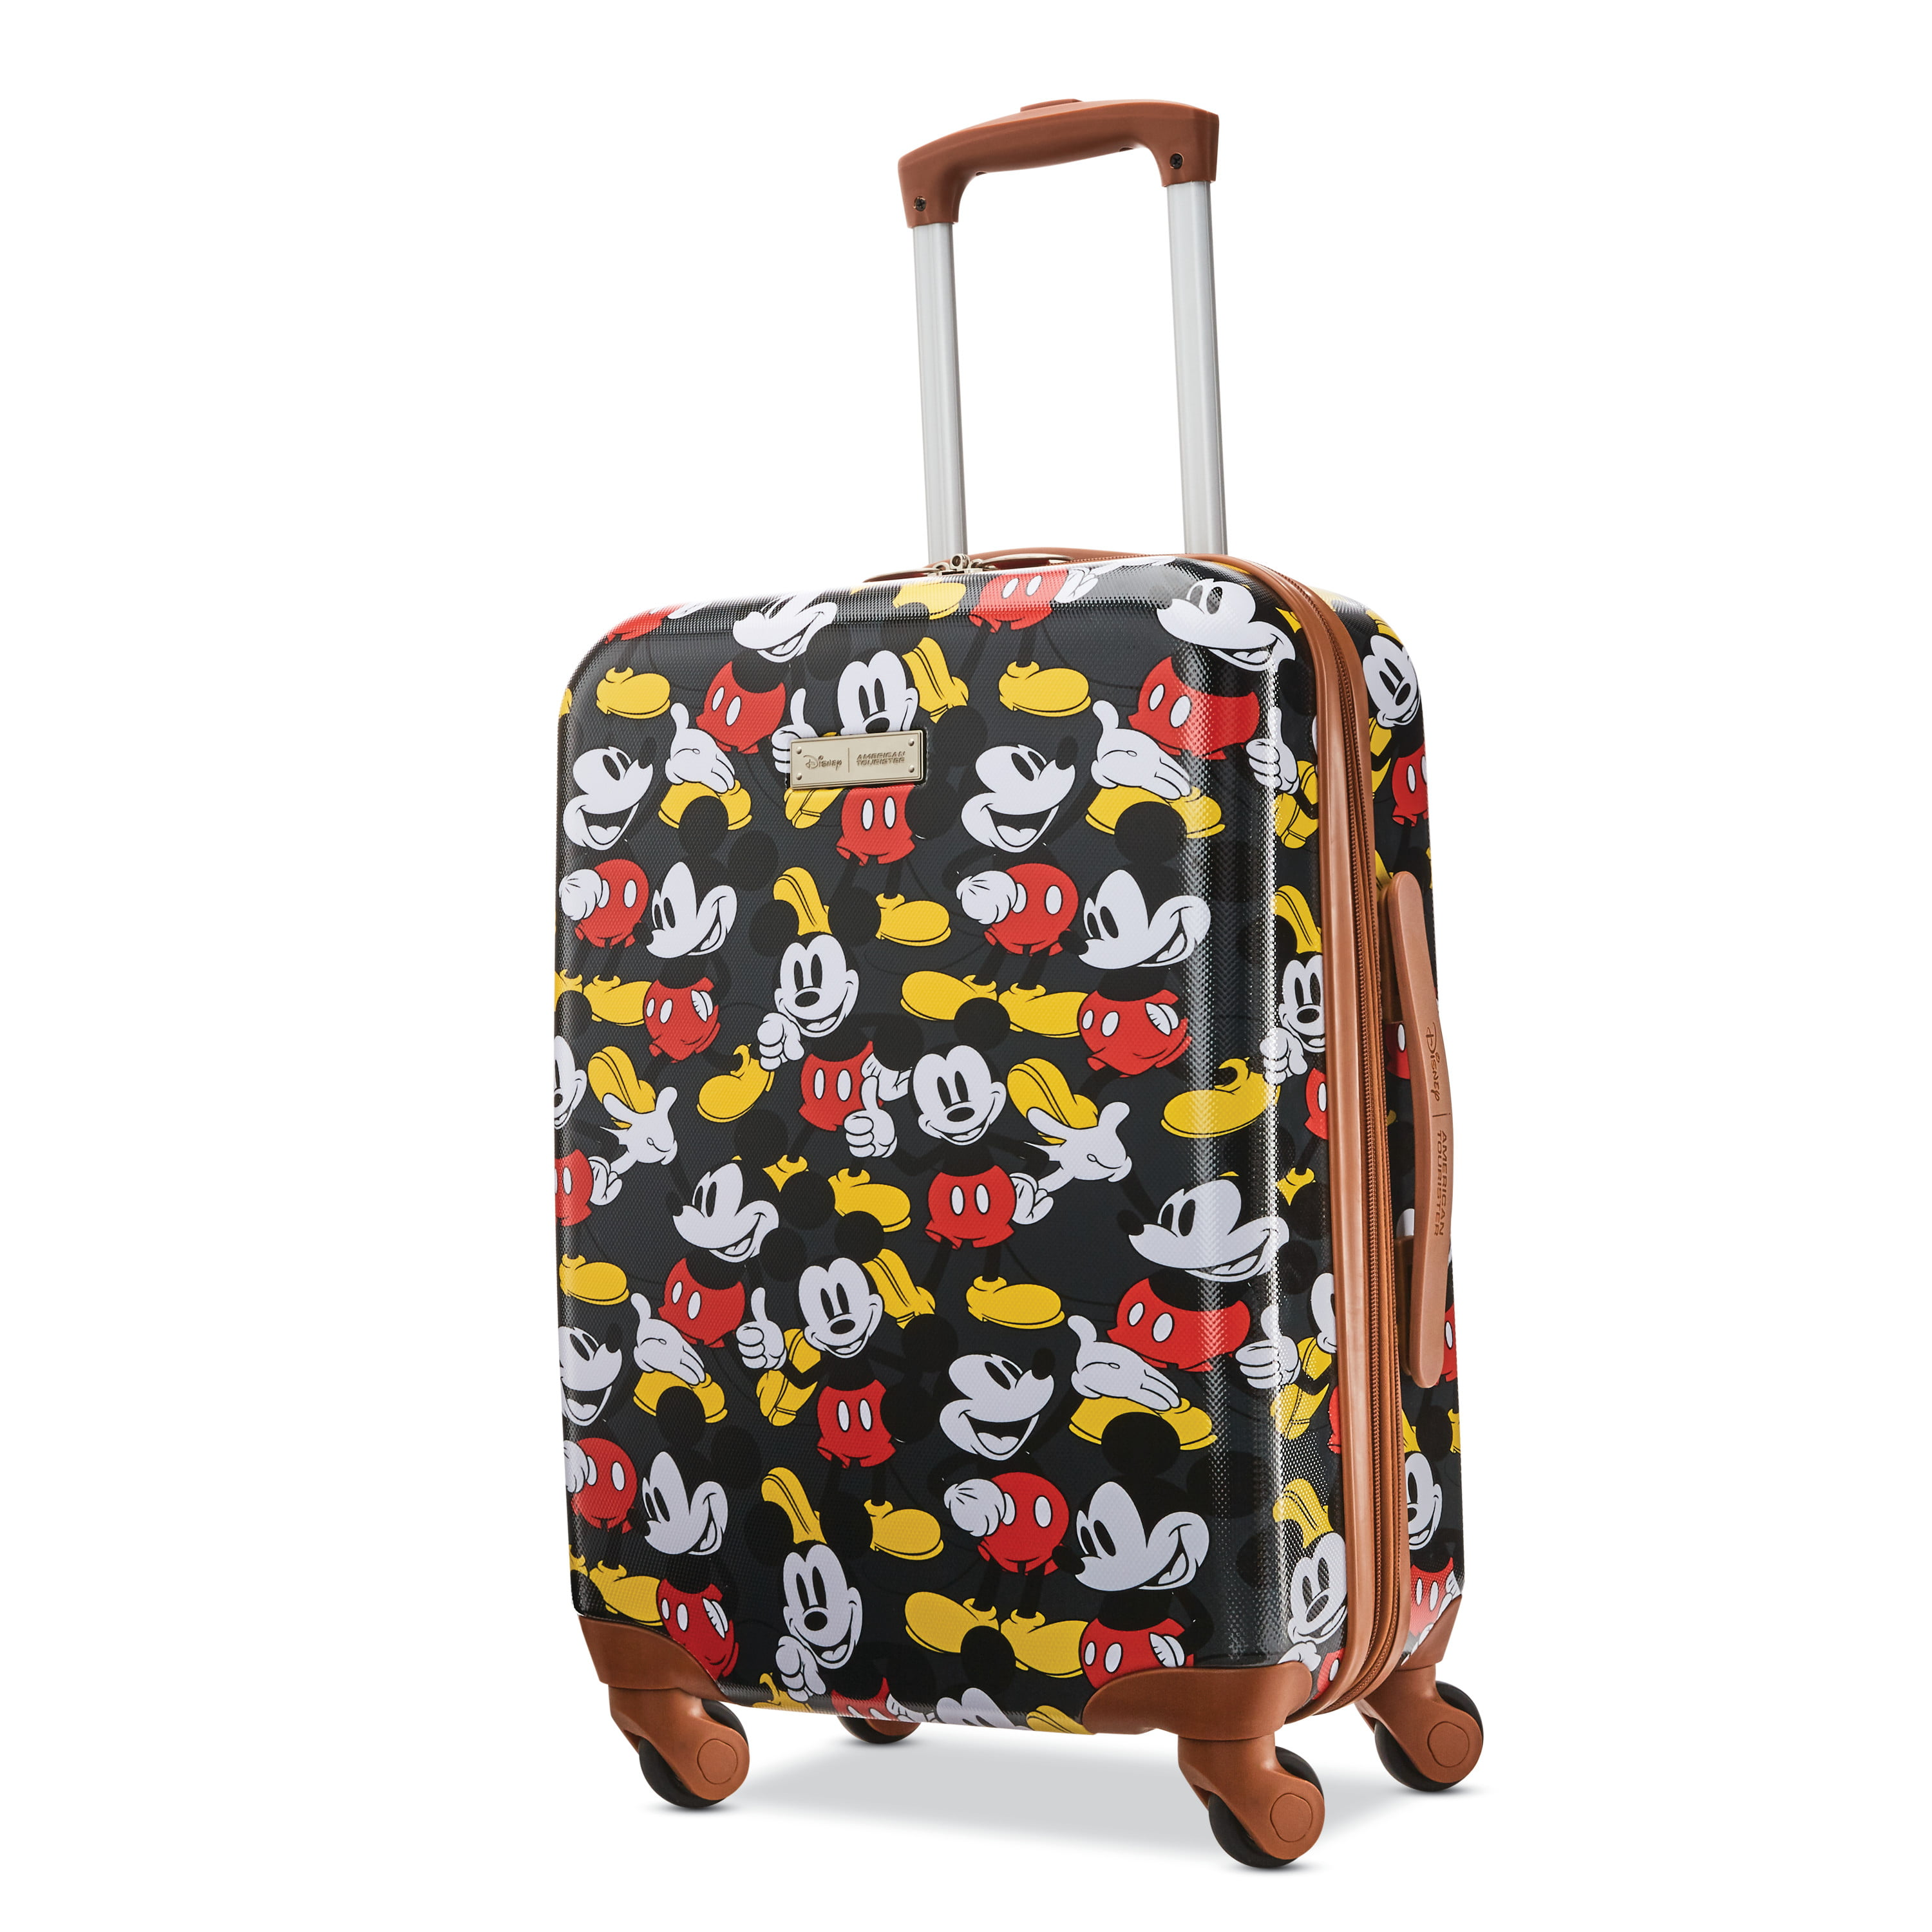 American Tourister American Tourister Disney Minnie Mouse 21 Inch Hardside Spinner Carry On Luggage One Piece Walmart Com Walmart Com